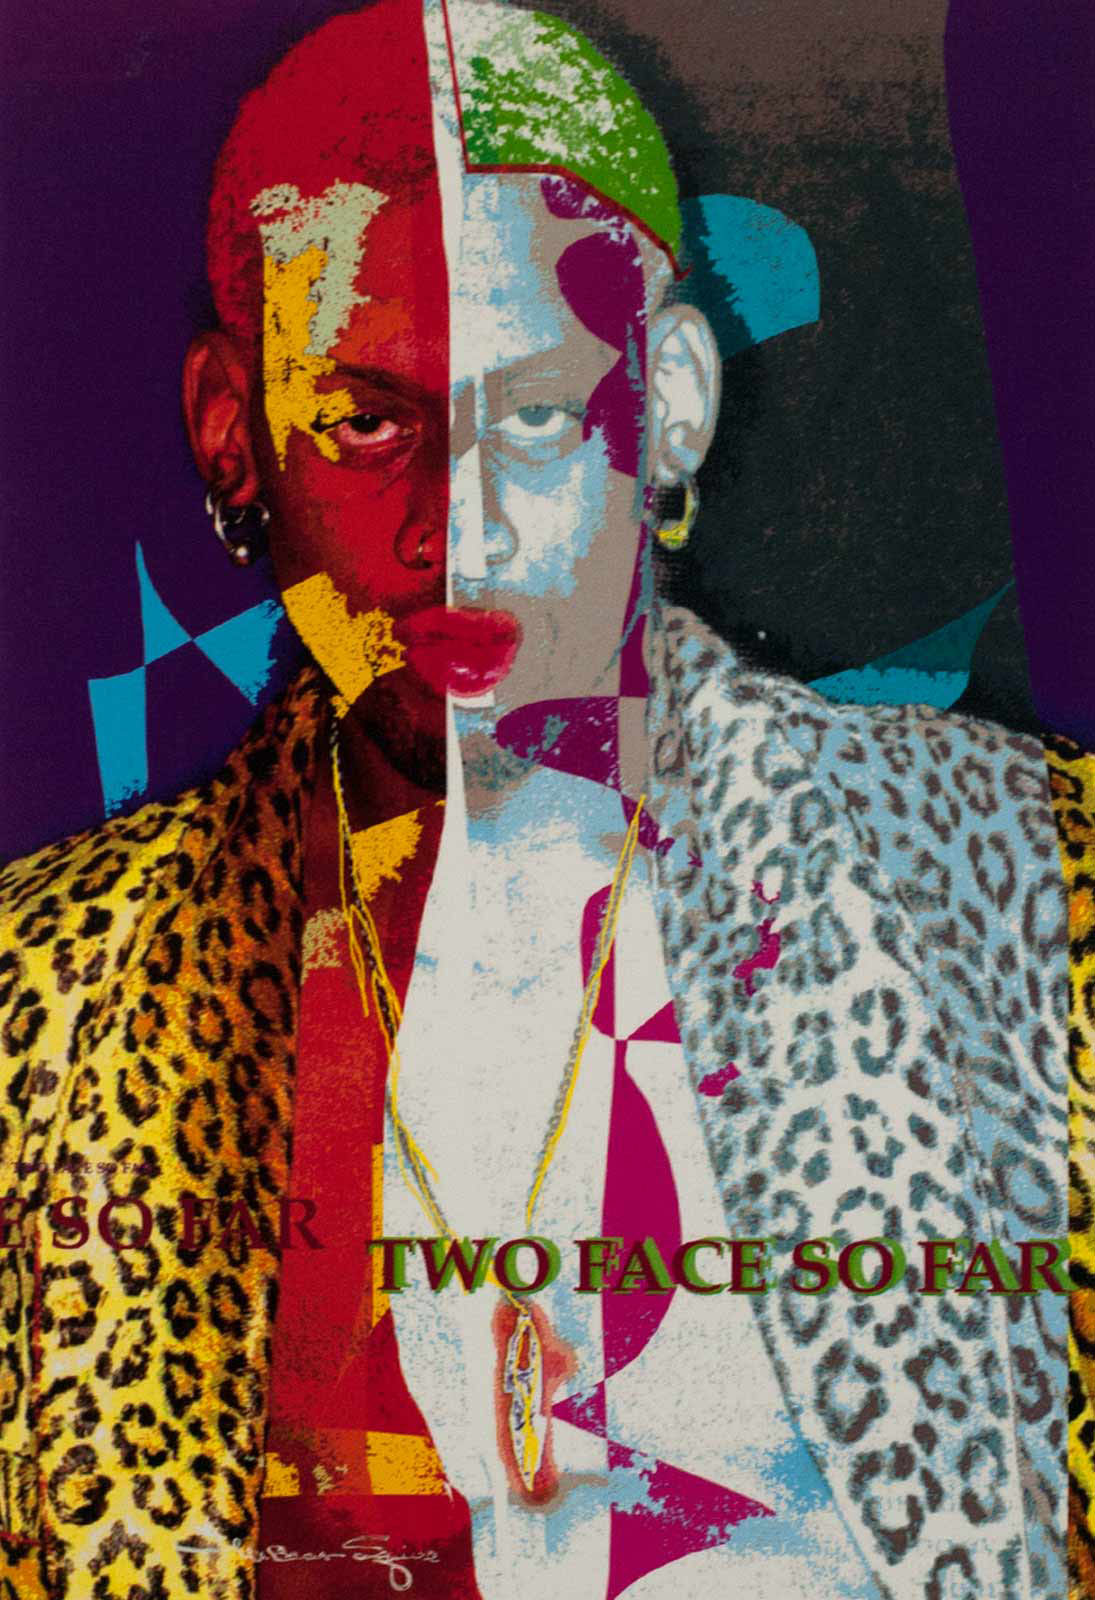 1893-MBS-Two-Face-So-Far-poster_pfeagc.jpg